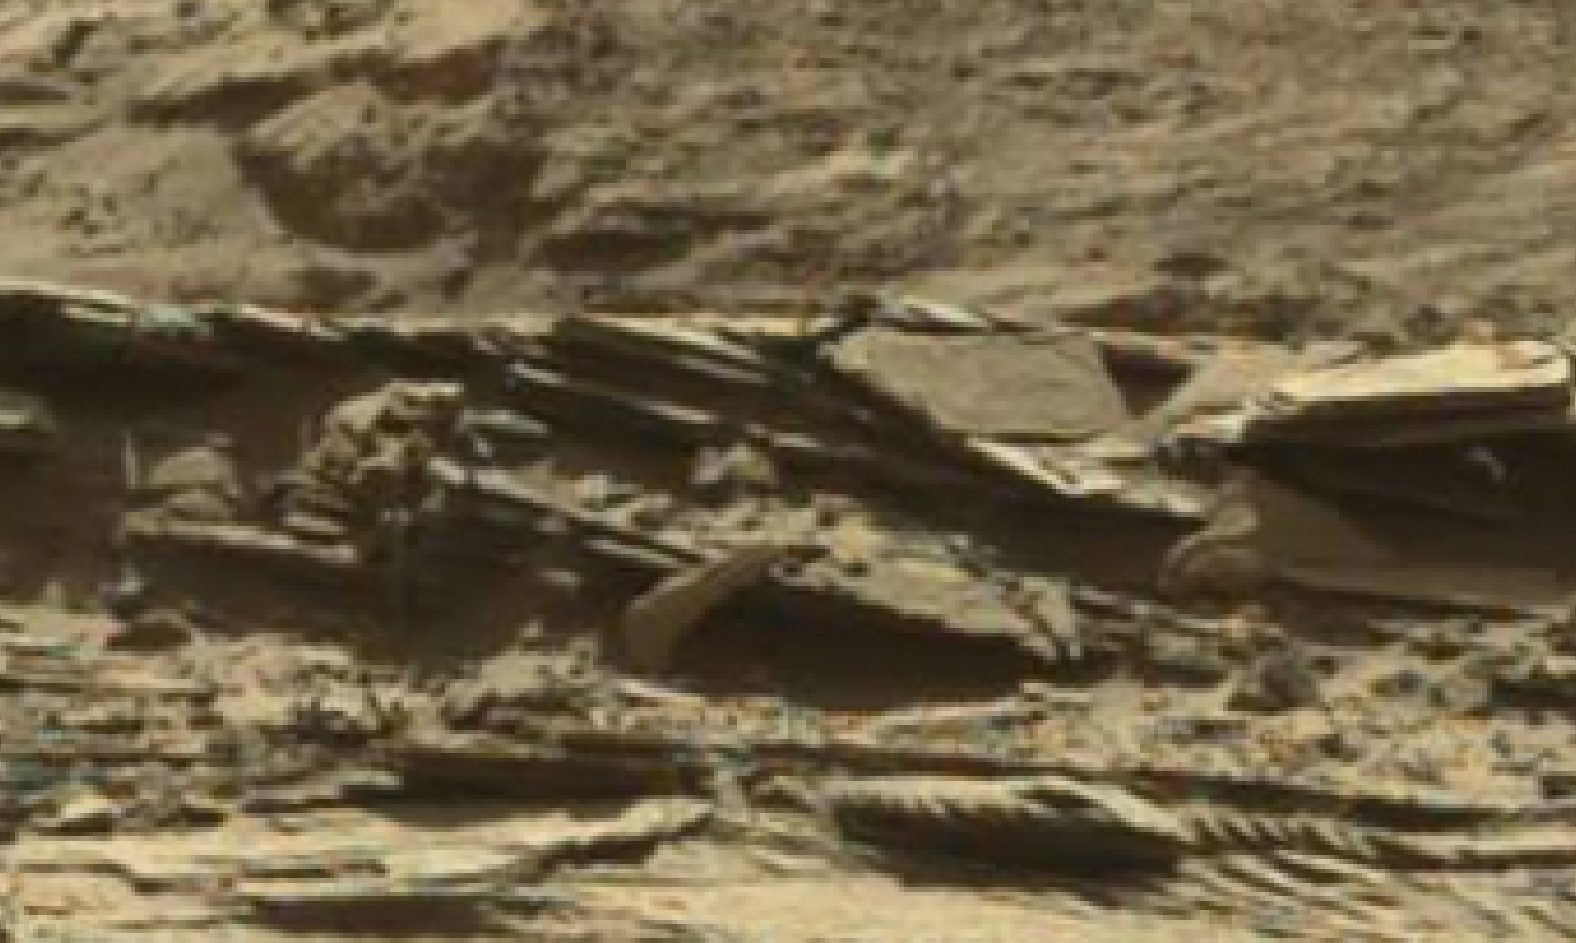 mars sol 1298 anomaly-artifacts 17 was life on mars